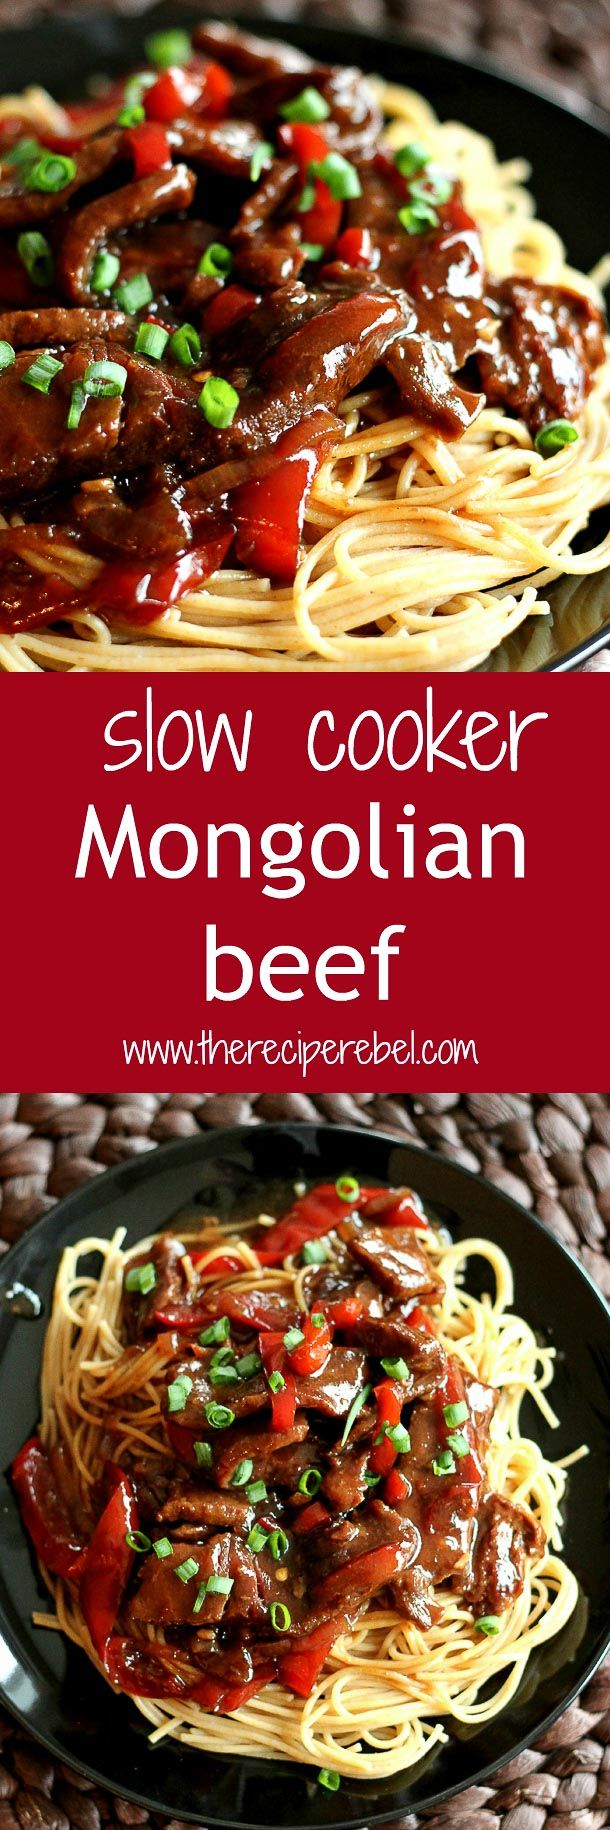 Slow Cooker Mongolian Beef: Tender beef cooks in a rich, dark, sweet and sour sauce in the crock pot -- the perfect easy meal for weeknights! www.thereciperebel.com   1kg steak serve 5  2 protein ½ fats